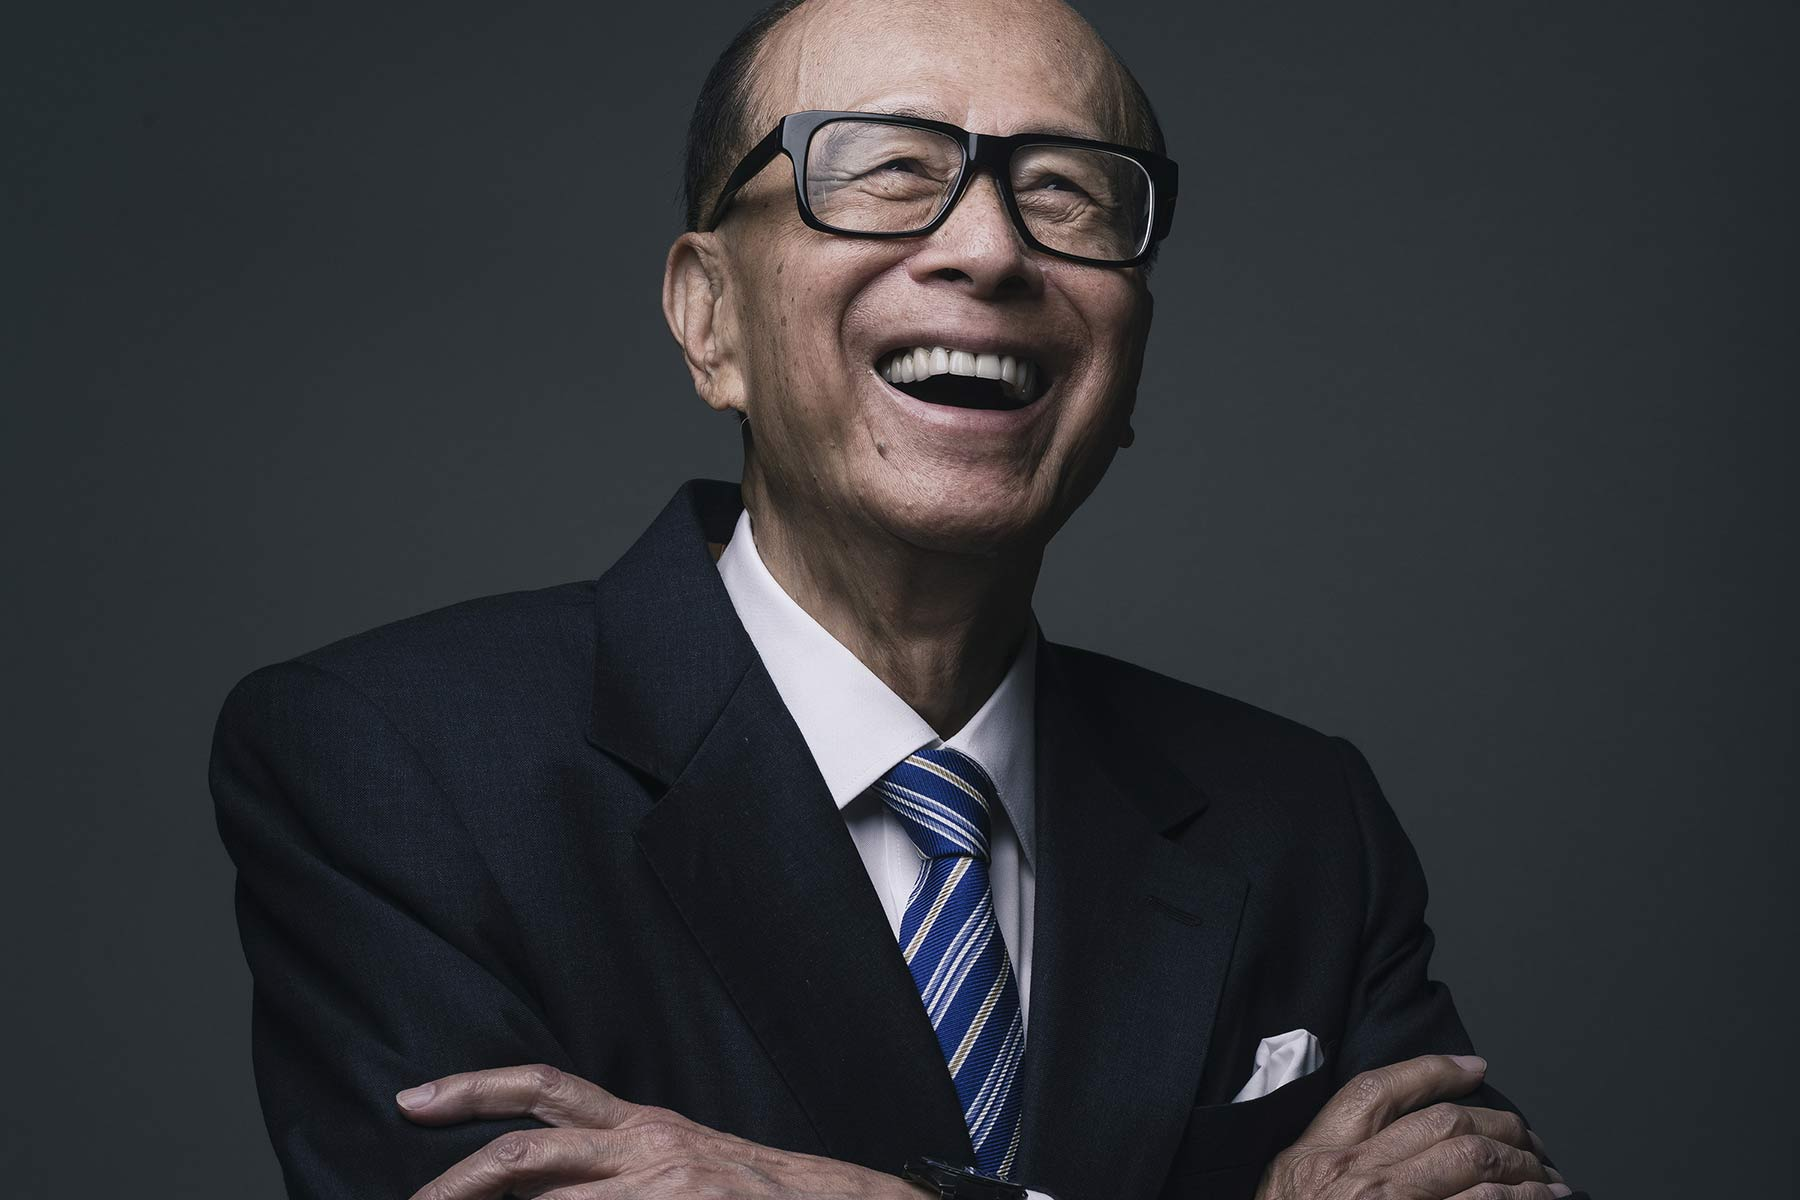 Who is the richest celebrity in Hong Kong? - Quora